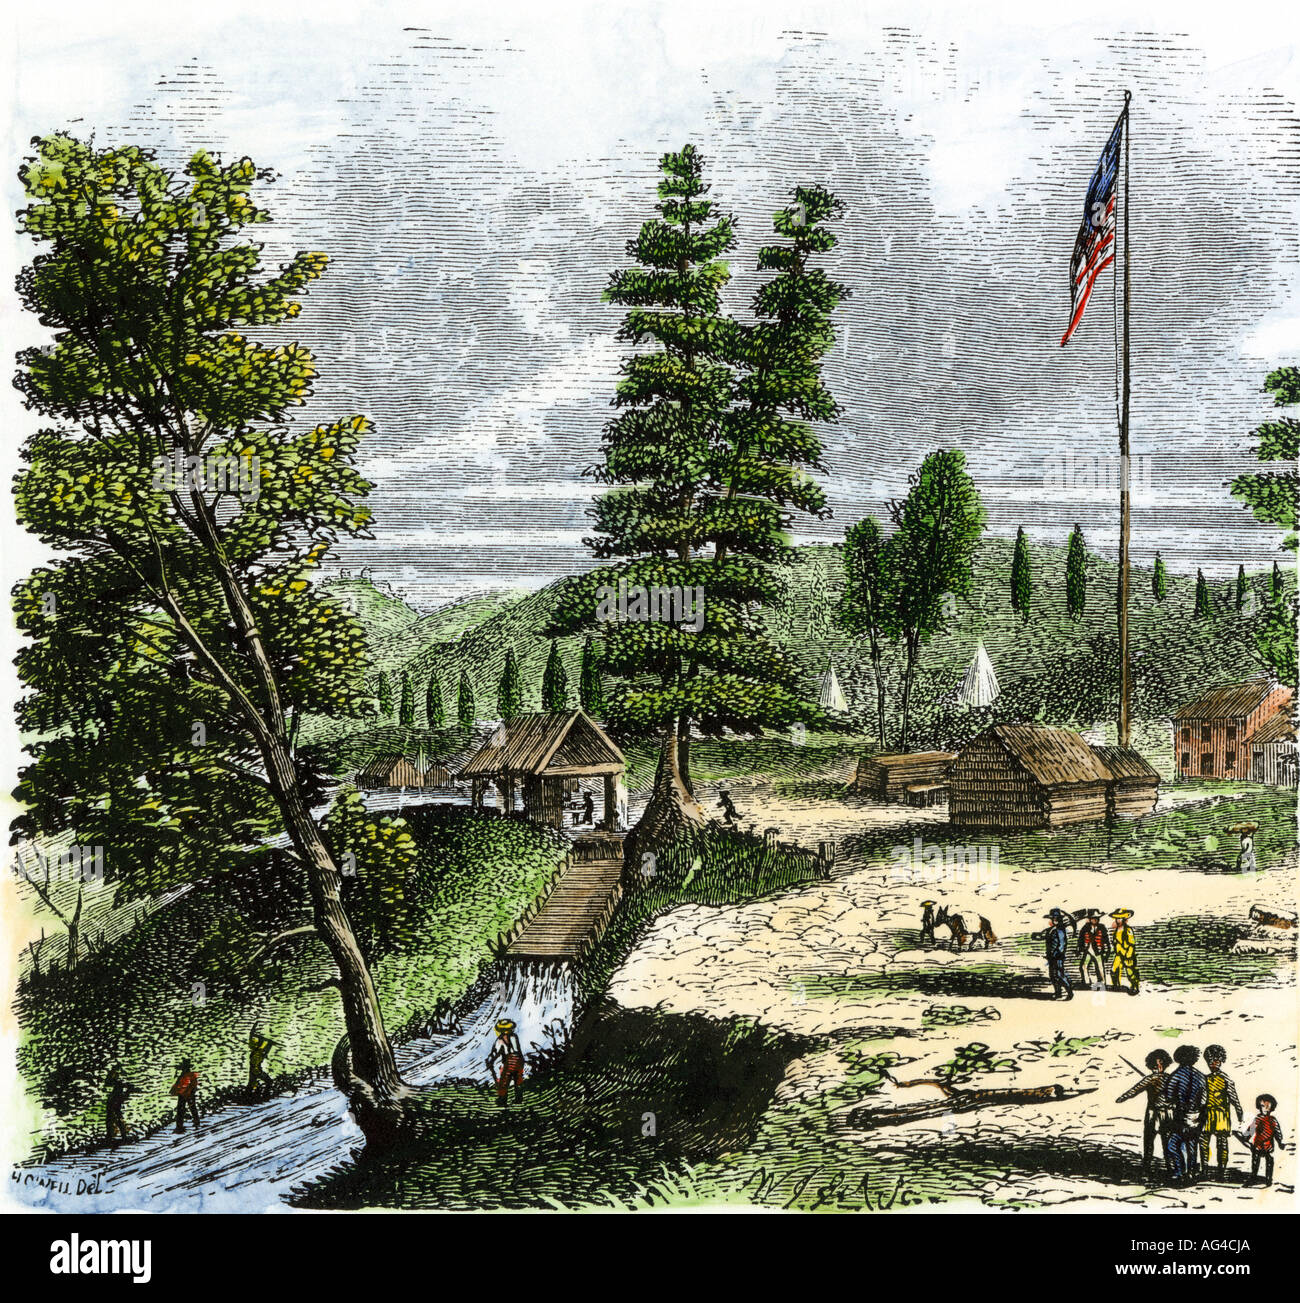 Sutters Mill the site of gold discovery by James Marshall in California 1848. Hand-colored woodcut - Stock Image